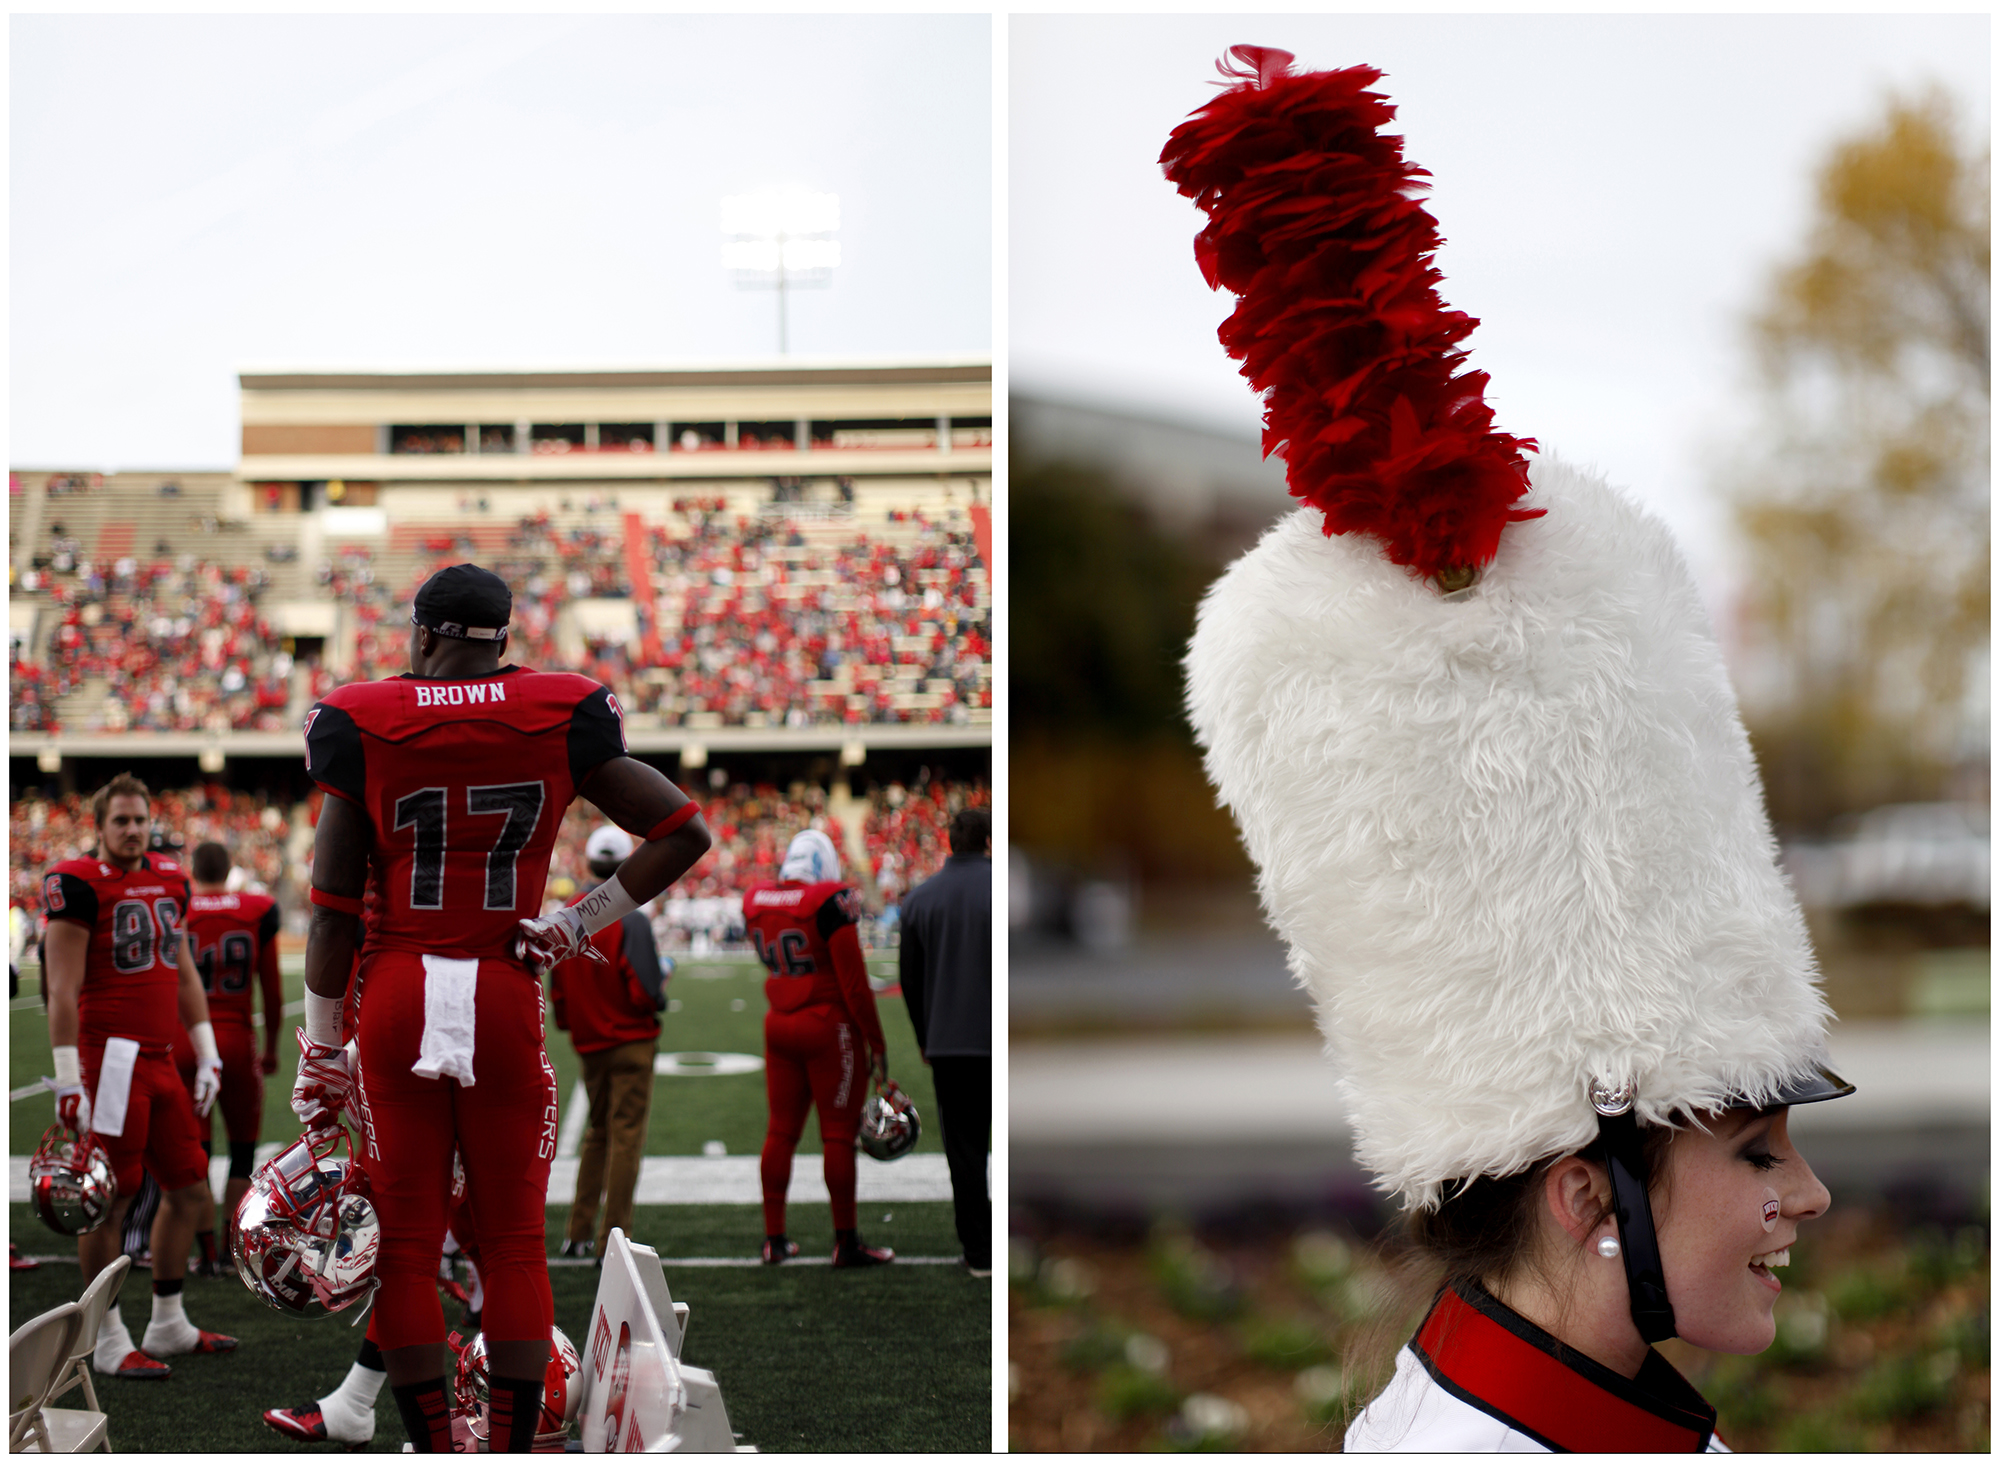 Left: Dejon Brown, a junior and linebacker, watches his team play it's game against UTEP on Saturday, Nov. 8, 2014. WKU won 35-27, their first Homecoming victory in three years. Right: Angela Cook, a senior and drum major, poses for a portrait while the WKU band gathers together in the Avenue of Champions at WKU on Saturday, Nov. 8, 2014.